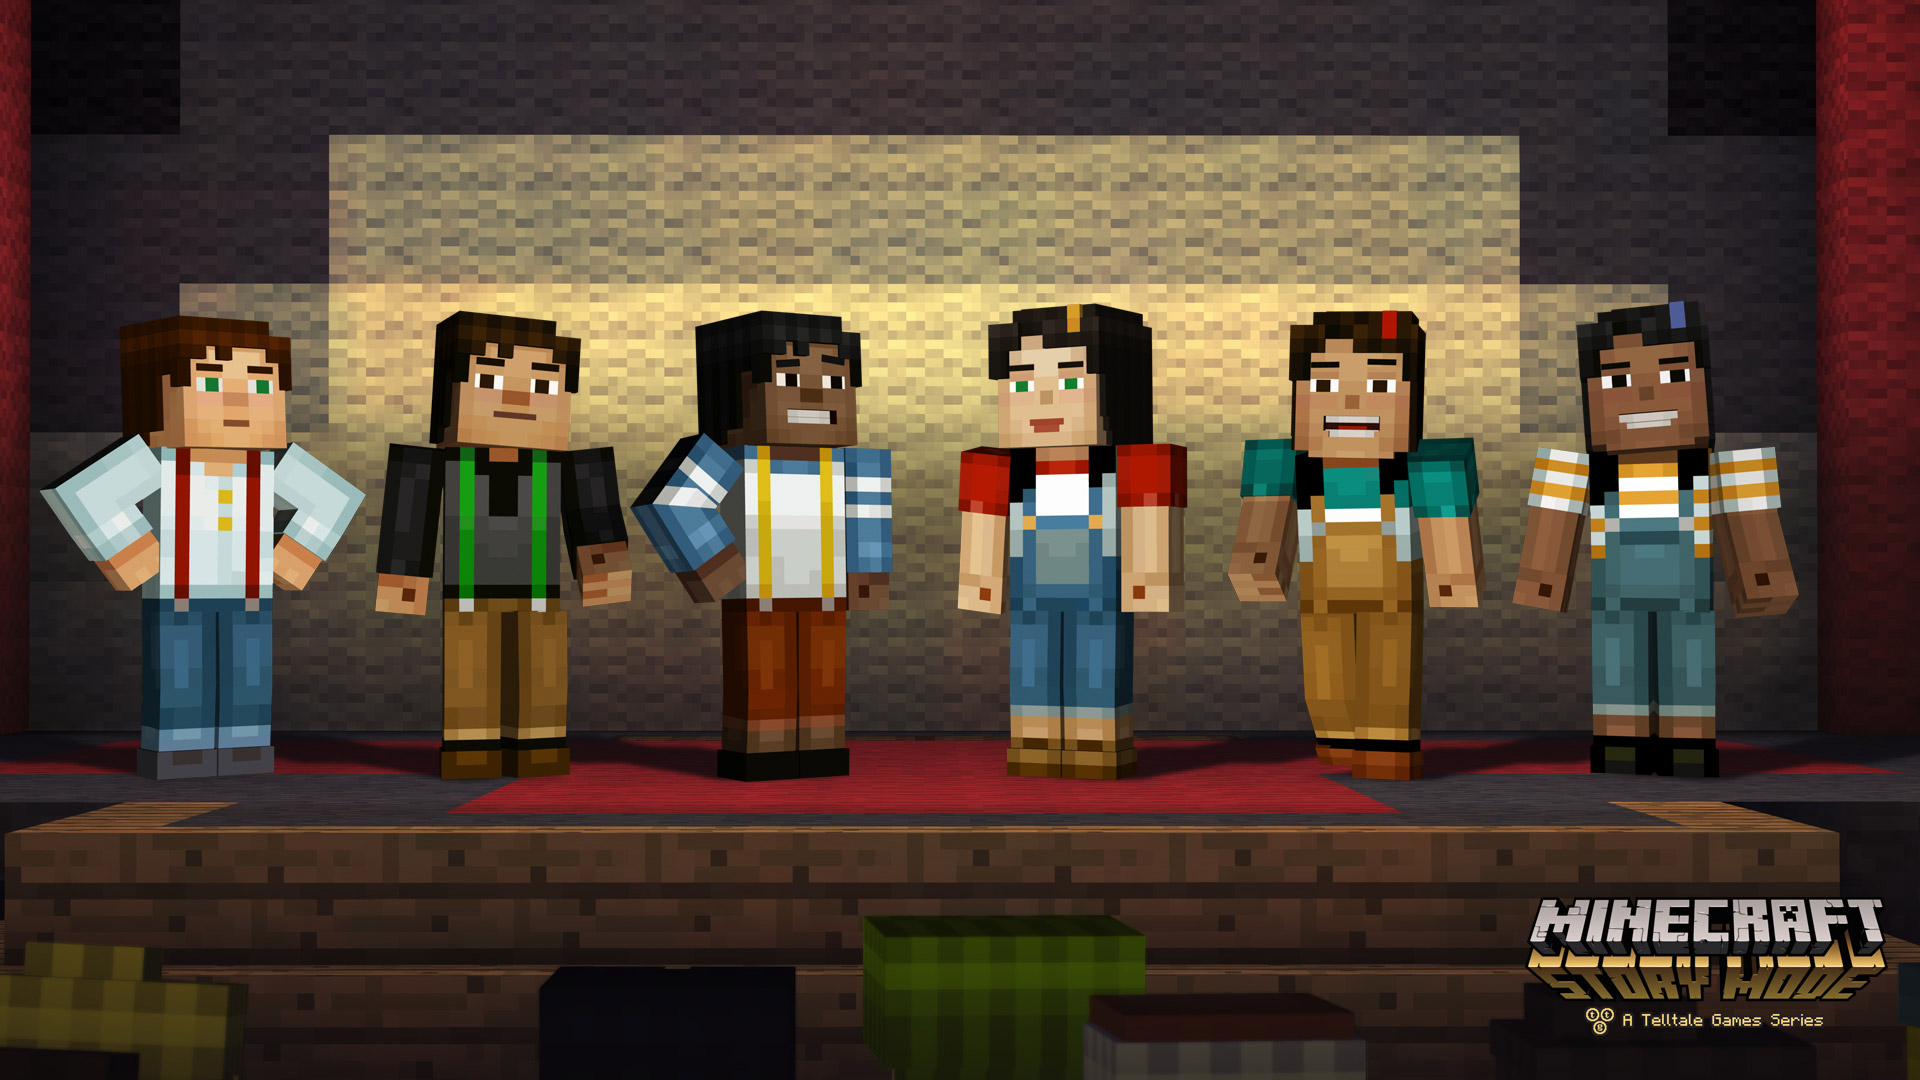 Minecraft: Story Mode features a first for Telltale — letting you pick your character